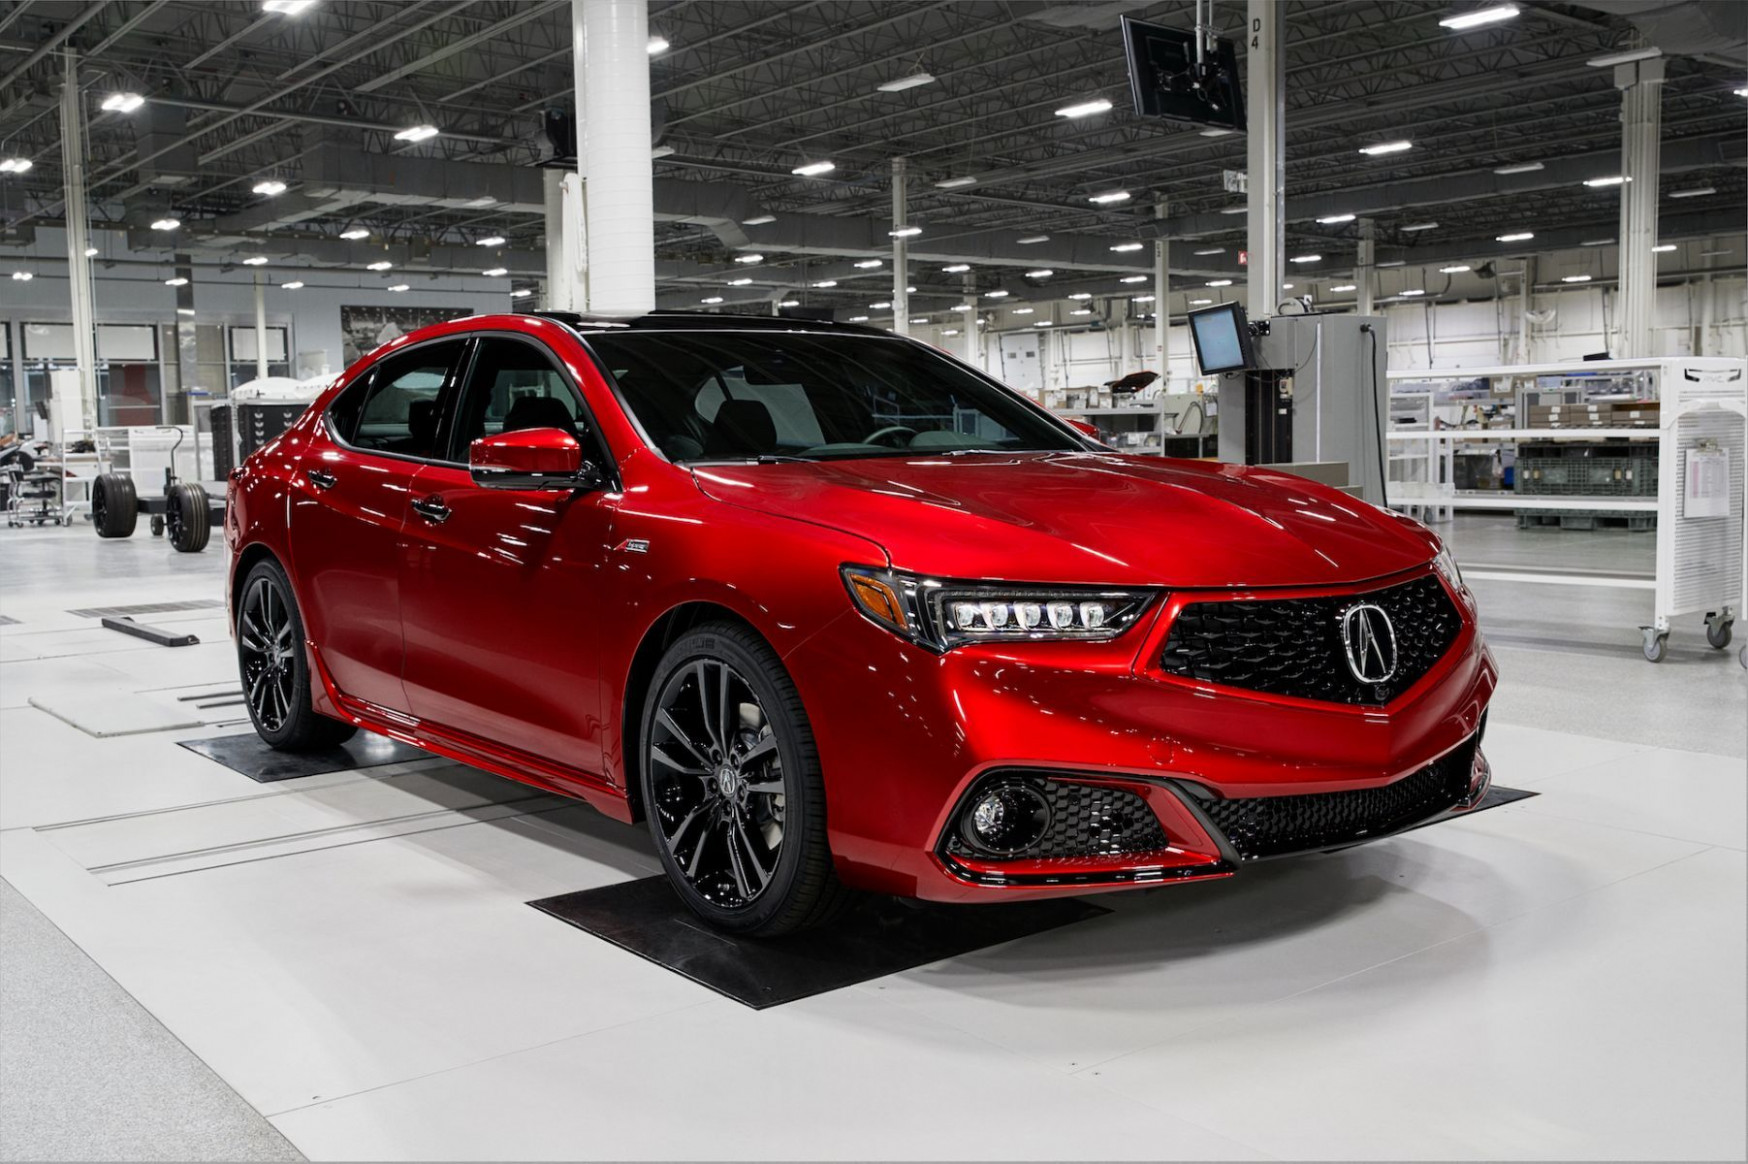 Markham Acura | The 7 Acura TLX Sedan: Different by Design